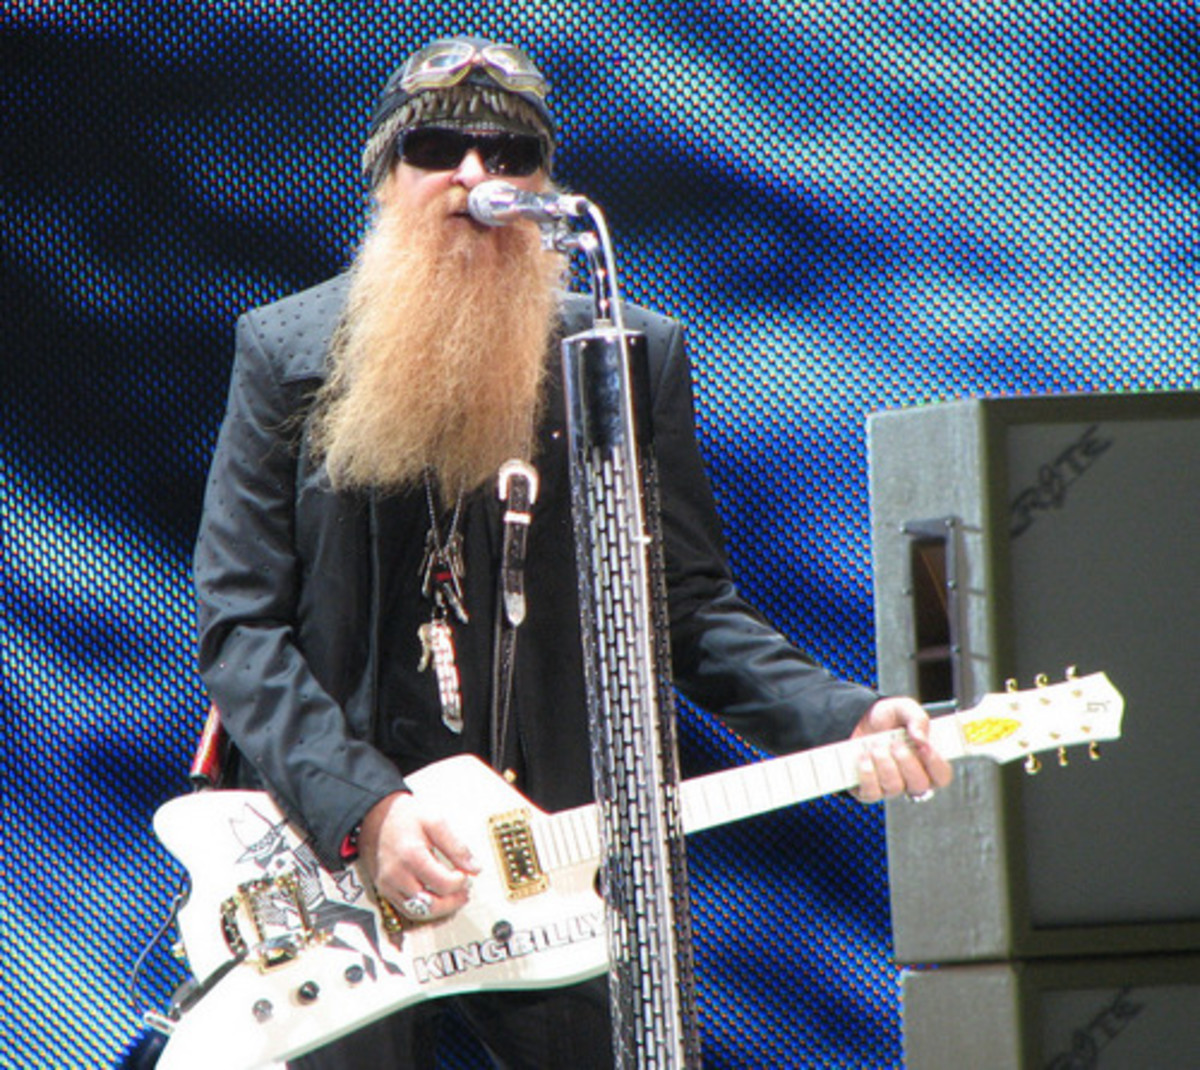 Billy Gibbons is instantly recognizable by sight and by the sound of his guitar playing.